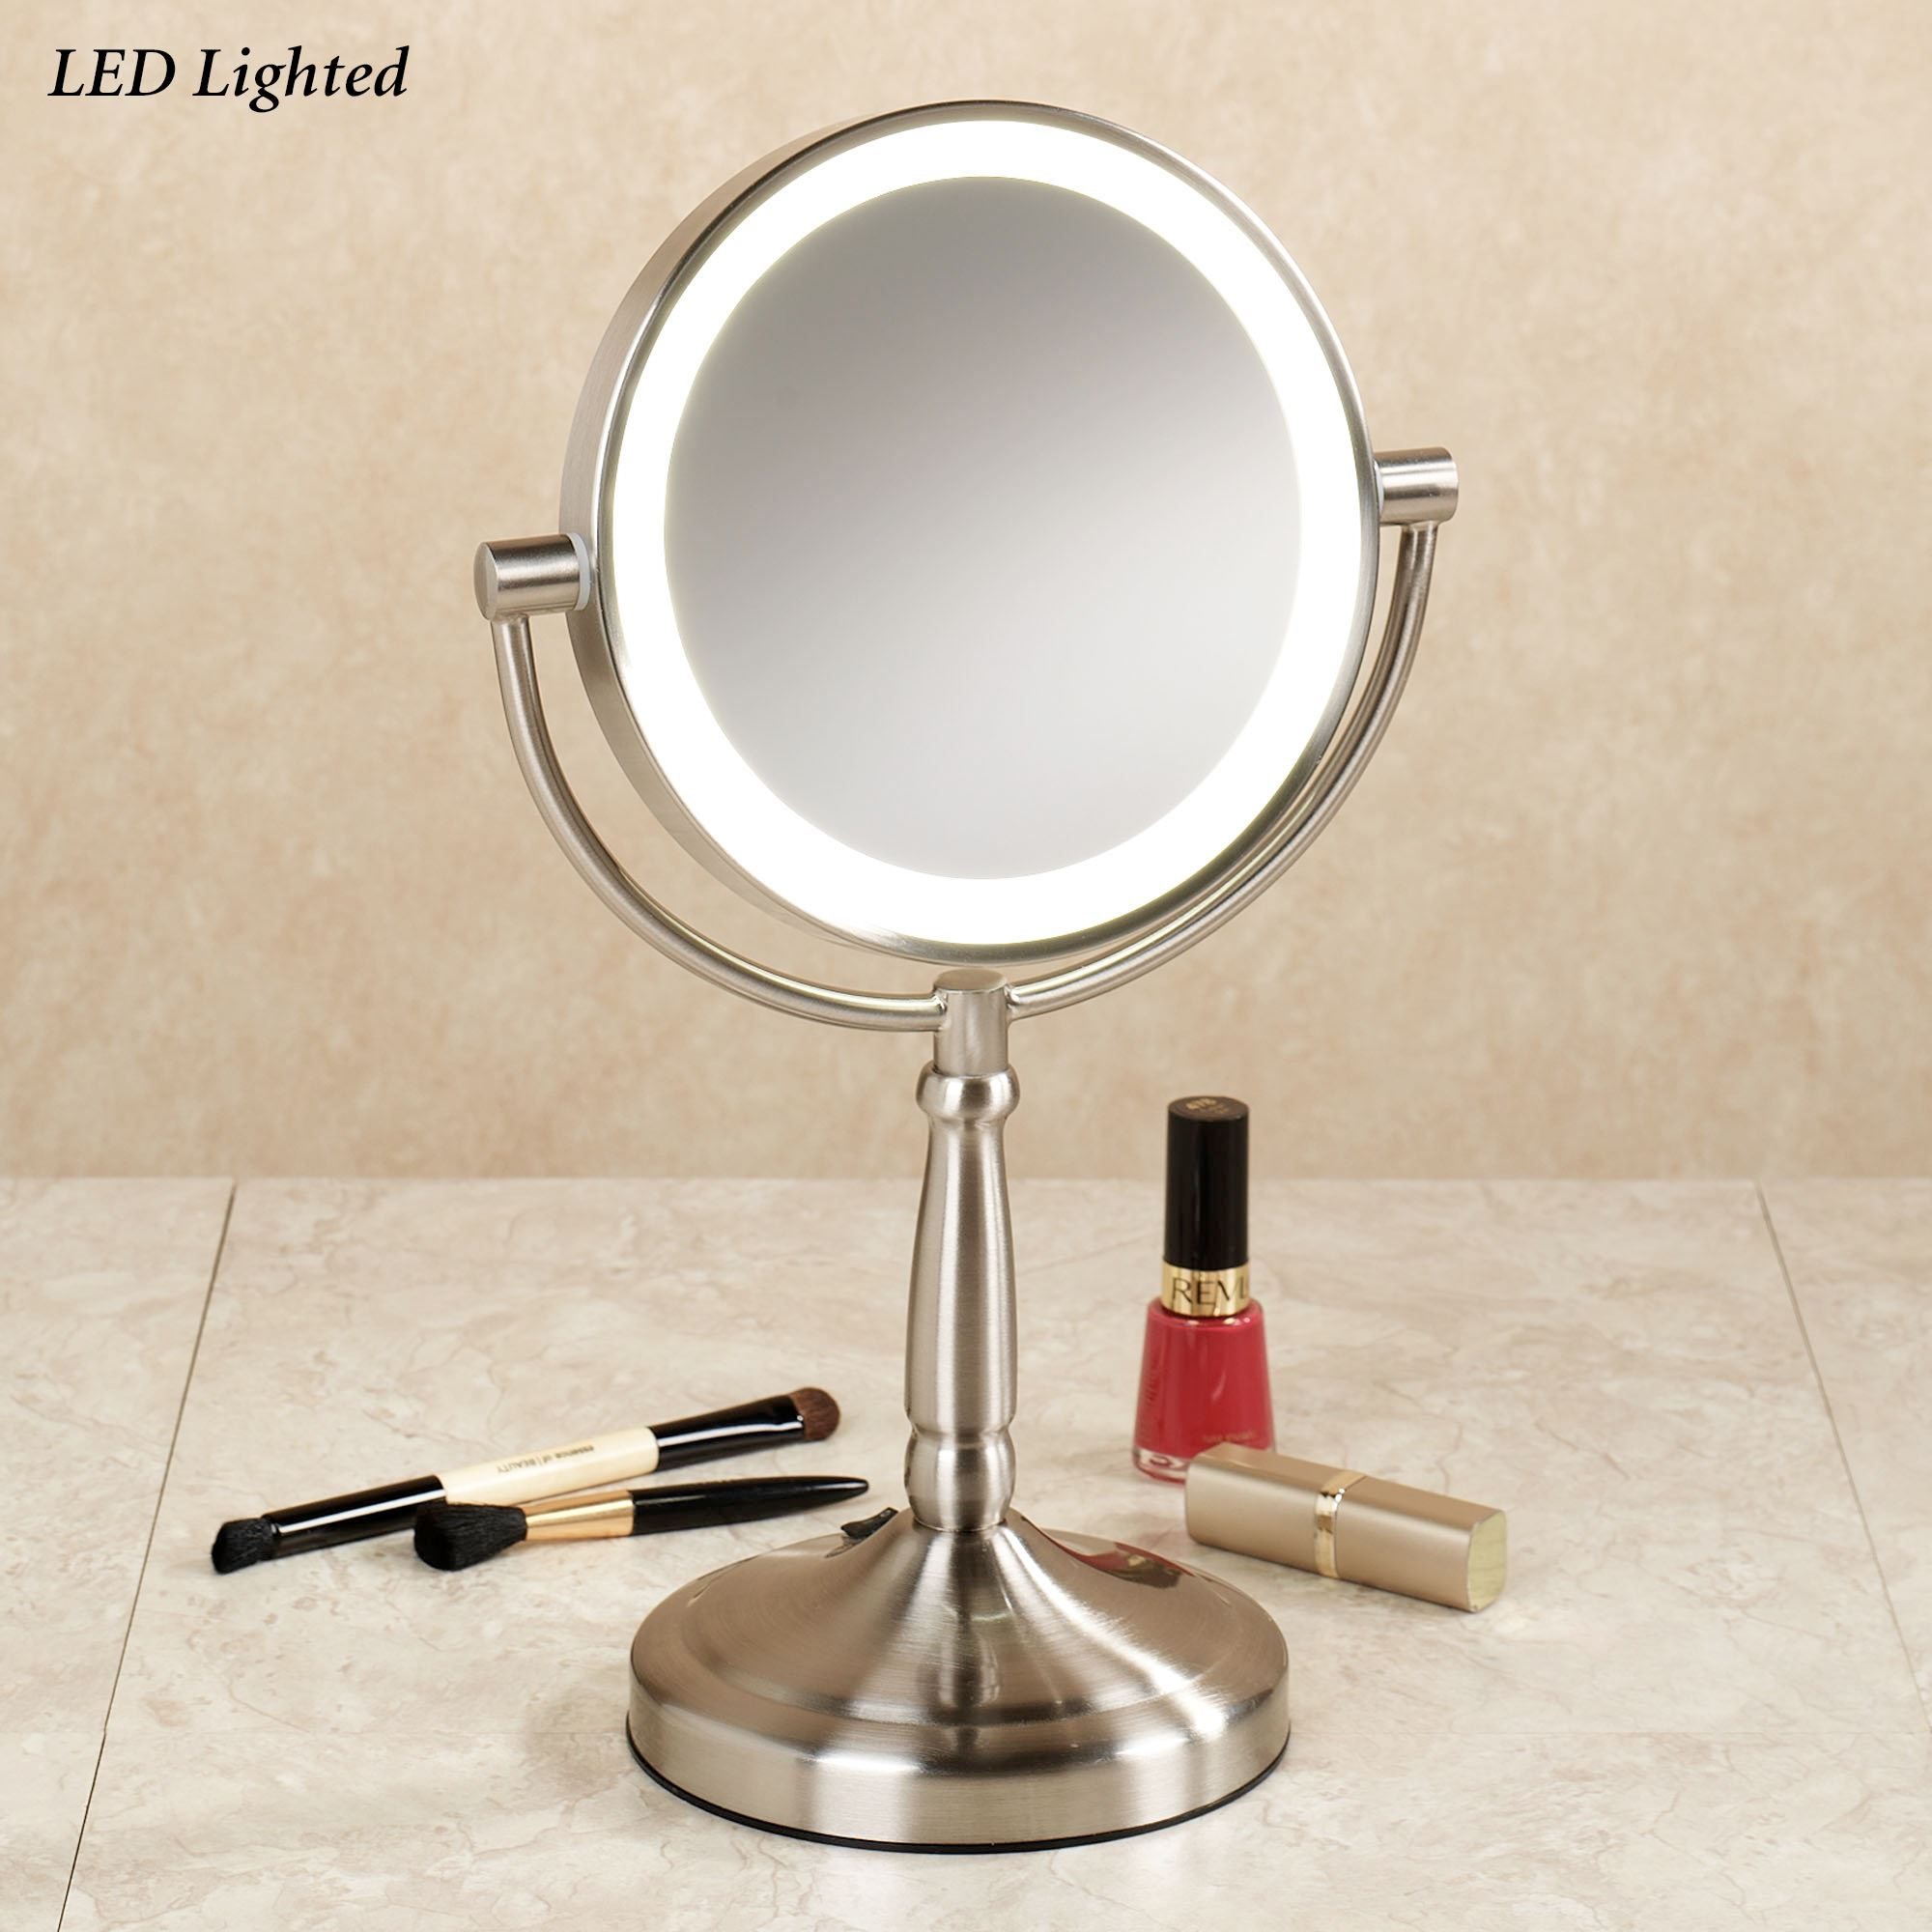 mirror pinterest with mirrorlighted pin vanity bathroom light lighted makeup led house